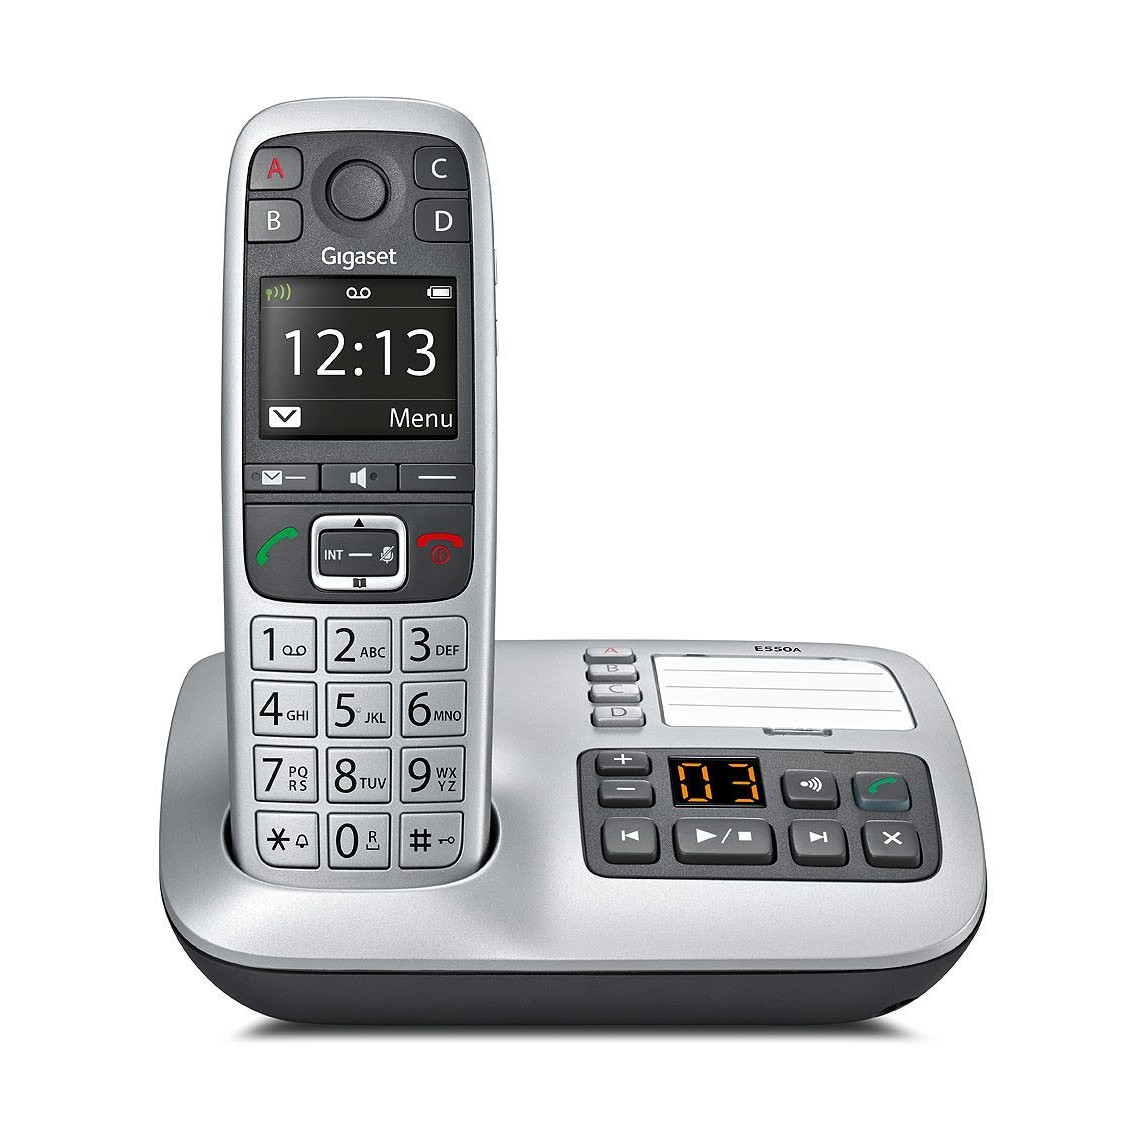 siemens gigaset e550a big button cordless telephone ligo. Black Bedroom Furniture Sets. Home Design Ideas